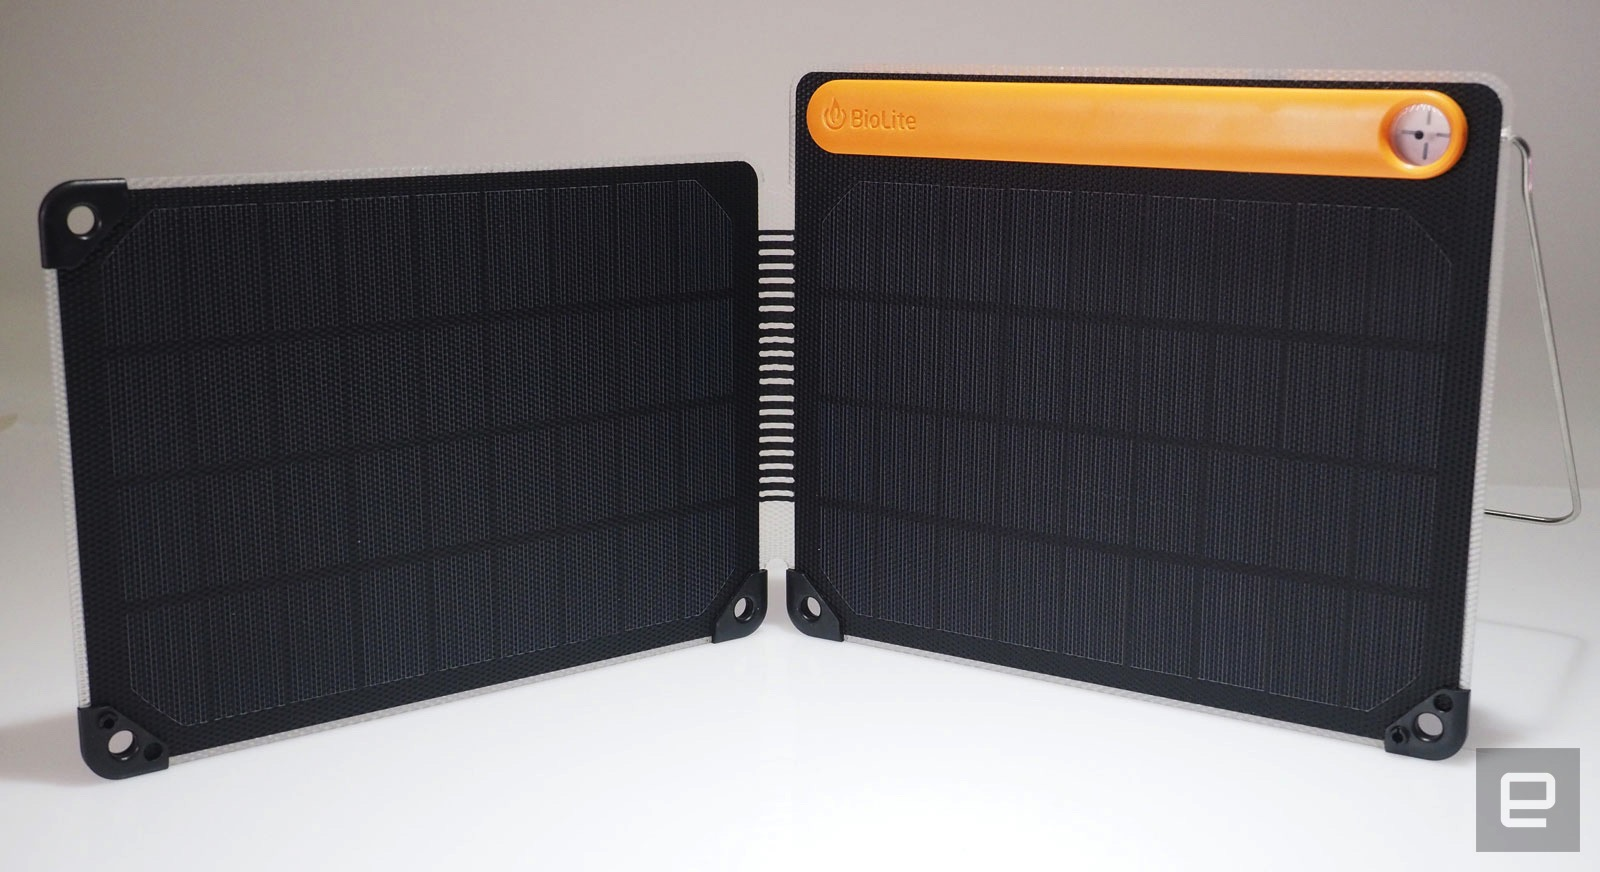 BioLite\u0027s new off-the-grid gear doubles down on power and light